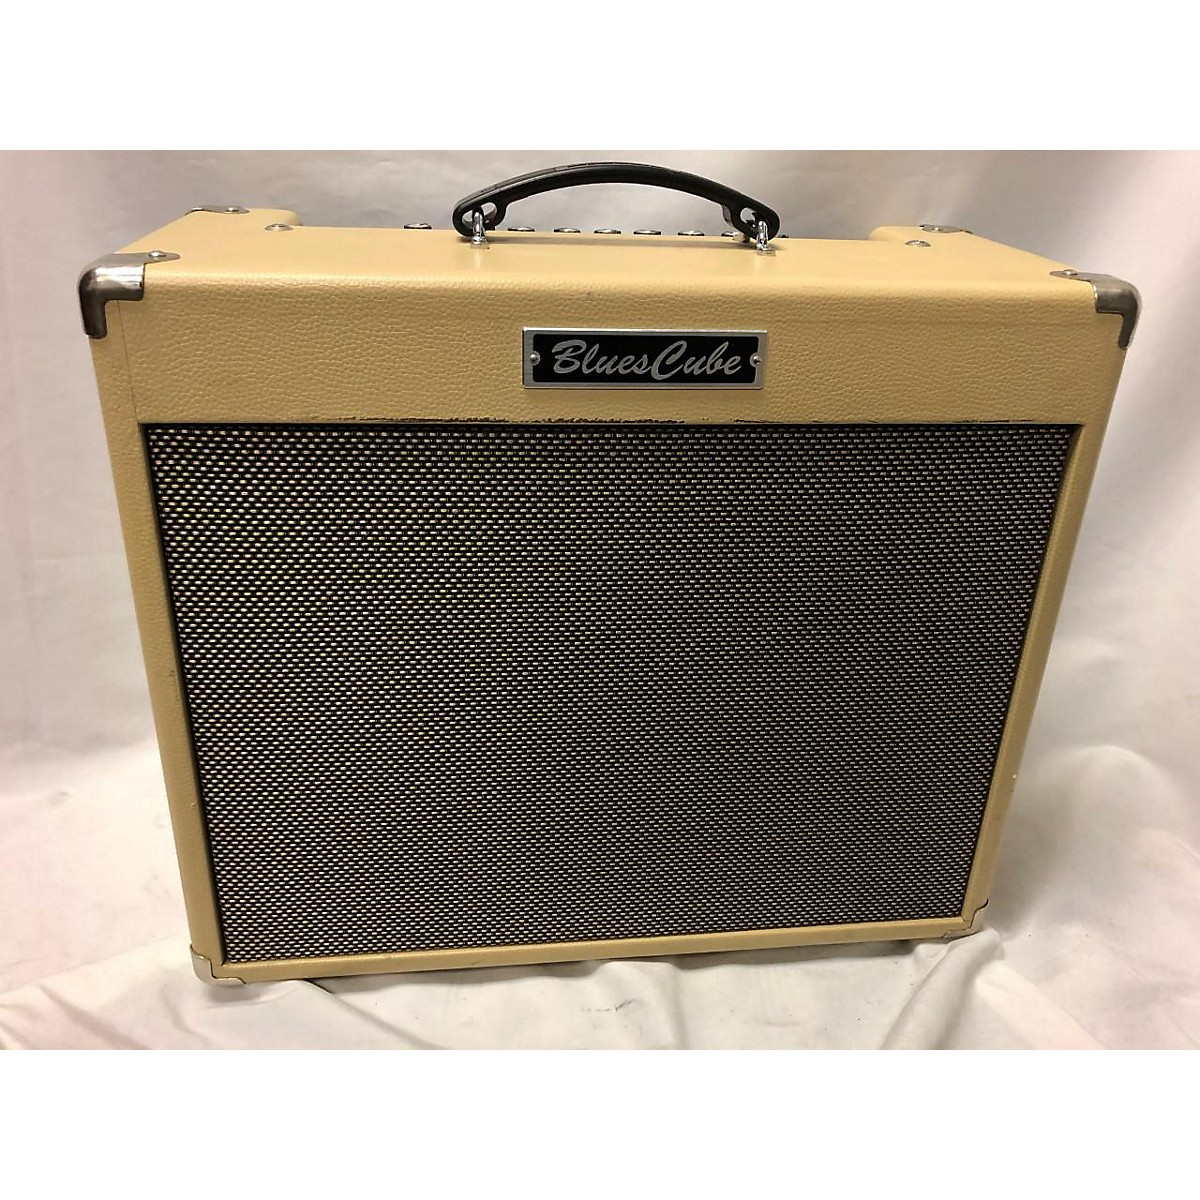 Roland Bluescube Stage Guitar Combo Amp